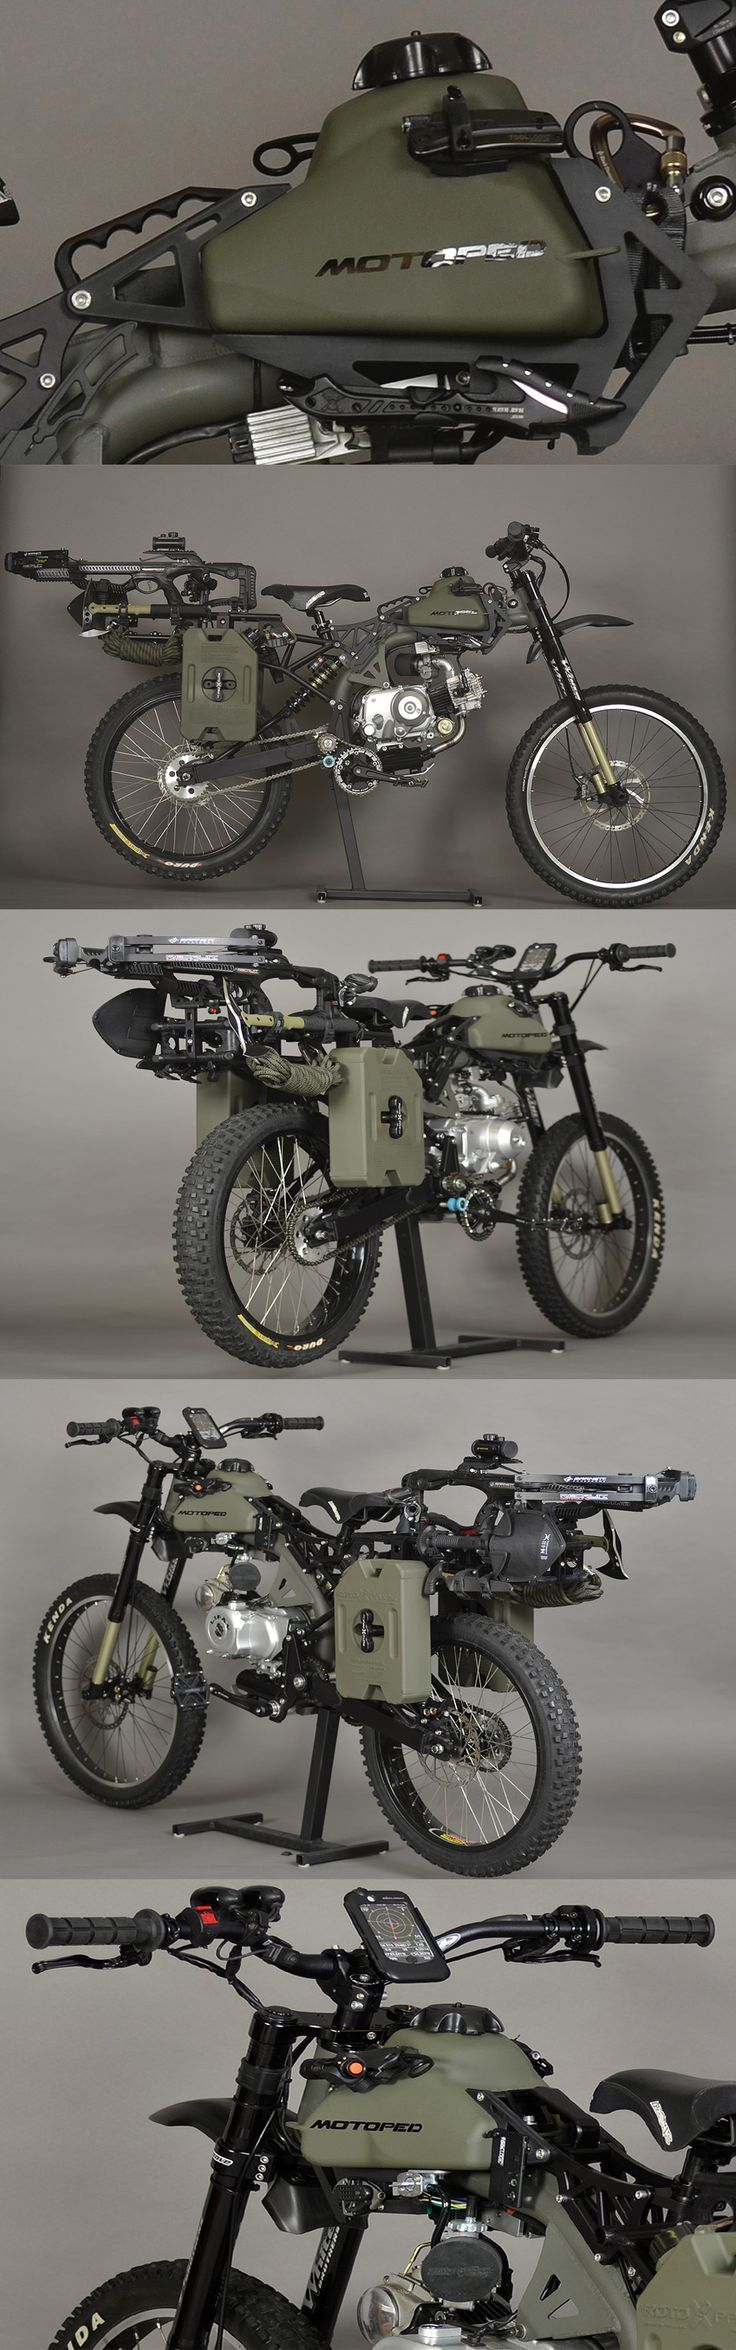 Motopeds Survival Bike is the Ultimate in Pedal-Power Adventuring. Do You Have Your Survival Gear Ready In A Bug Out Bag? Do You Have Your Gadgets And Tactical Weapons For A Major Emergency Or Event? The Apocalypse Might Not Be Coming But Emergency Preparedness For Camping, Hiking, Backpacking, And Fishing Are Important. What If Your Trip Takes An Unexpected Turn For The Worst? DIY And Homemade Tools, Weapons, And Cool Backpacks To Help You Be Survival Ready.